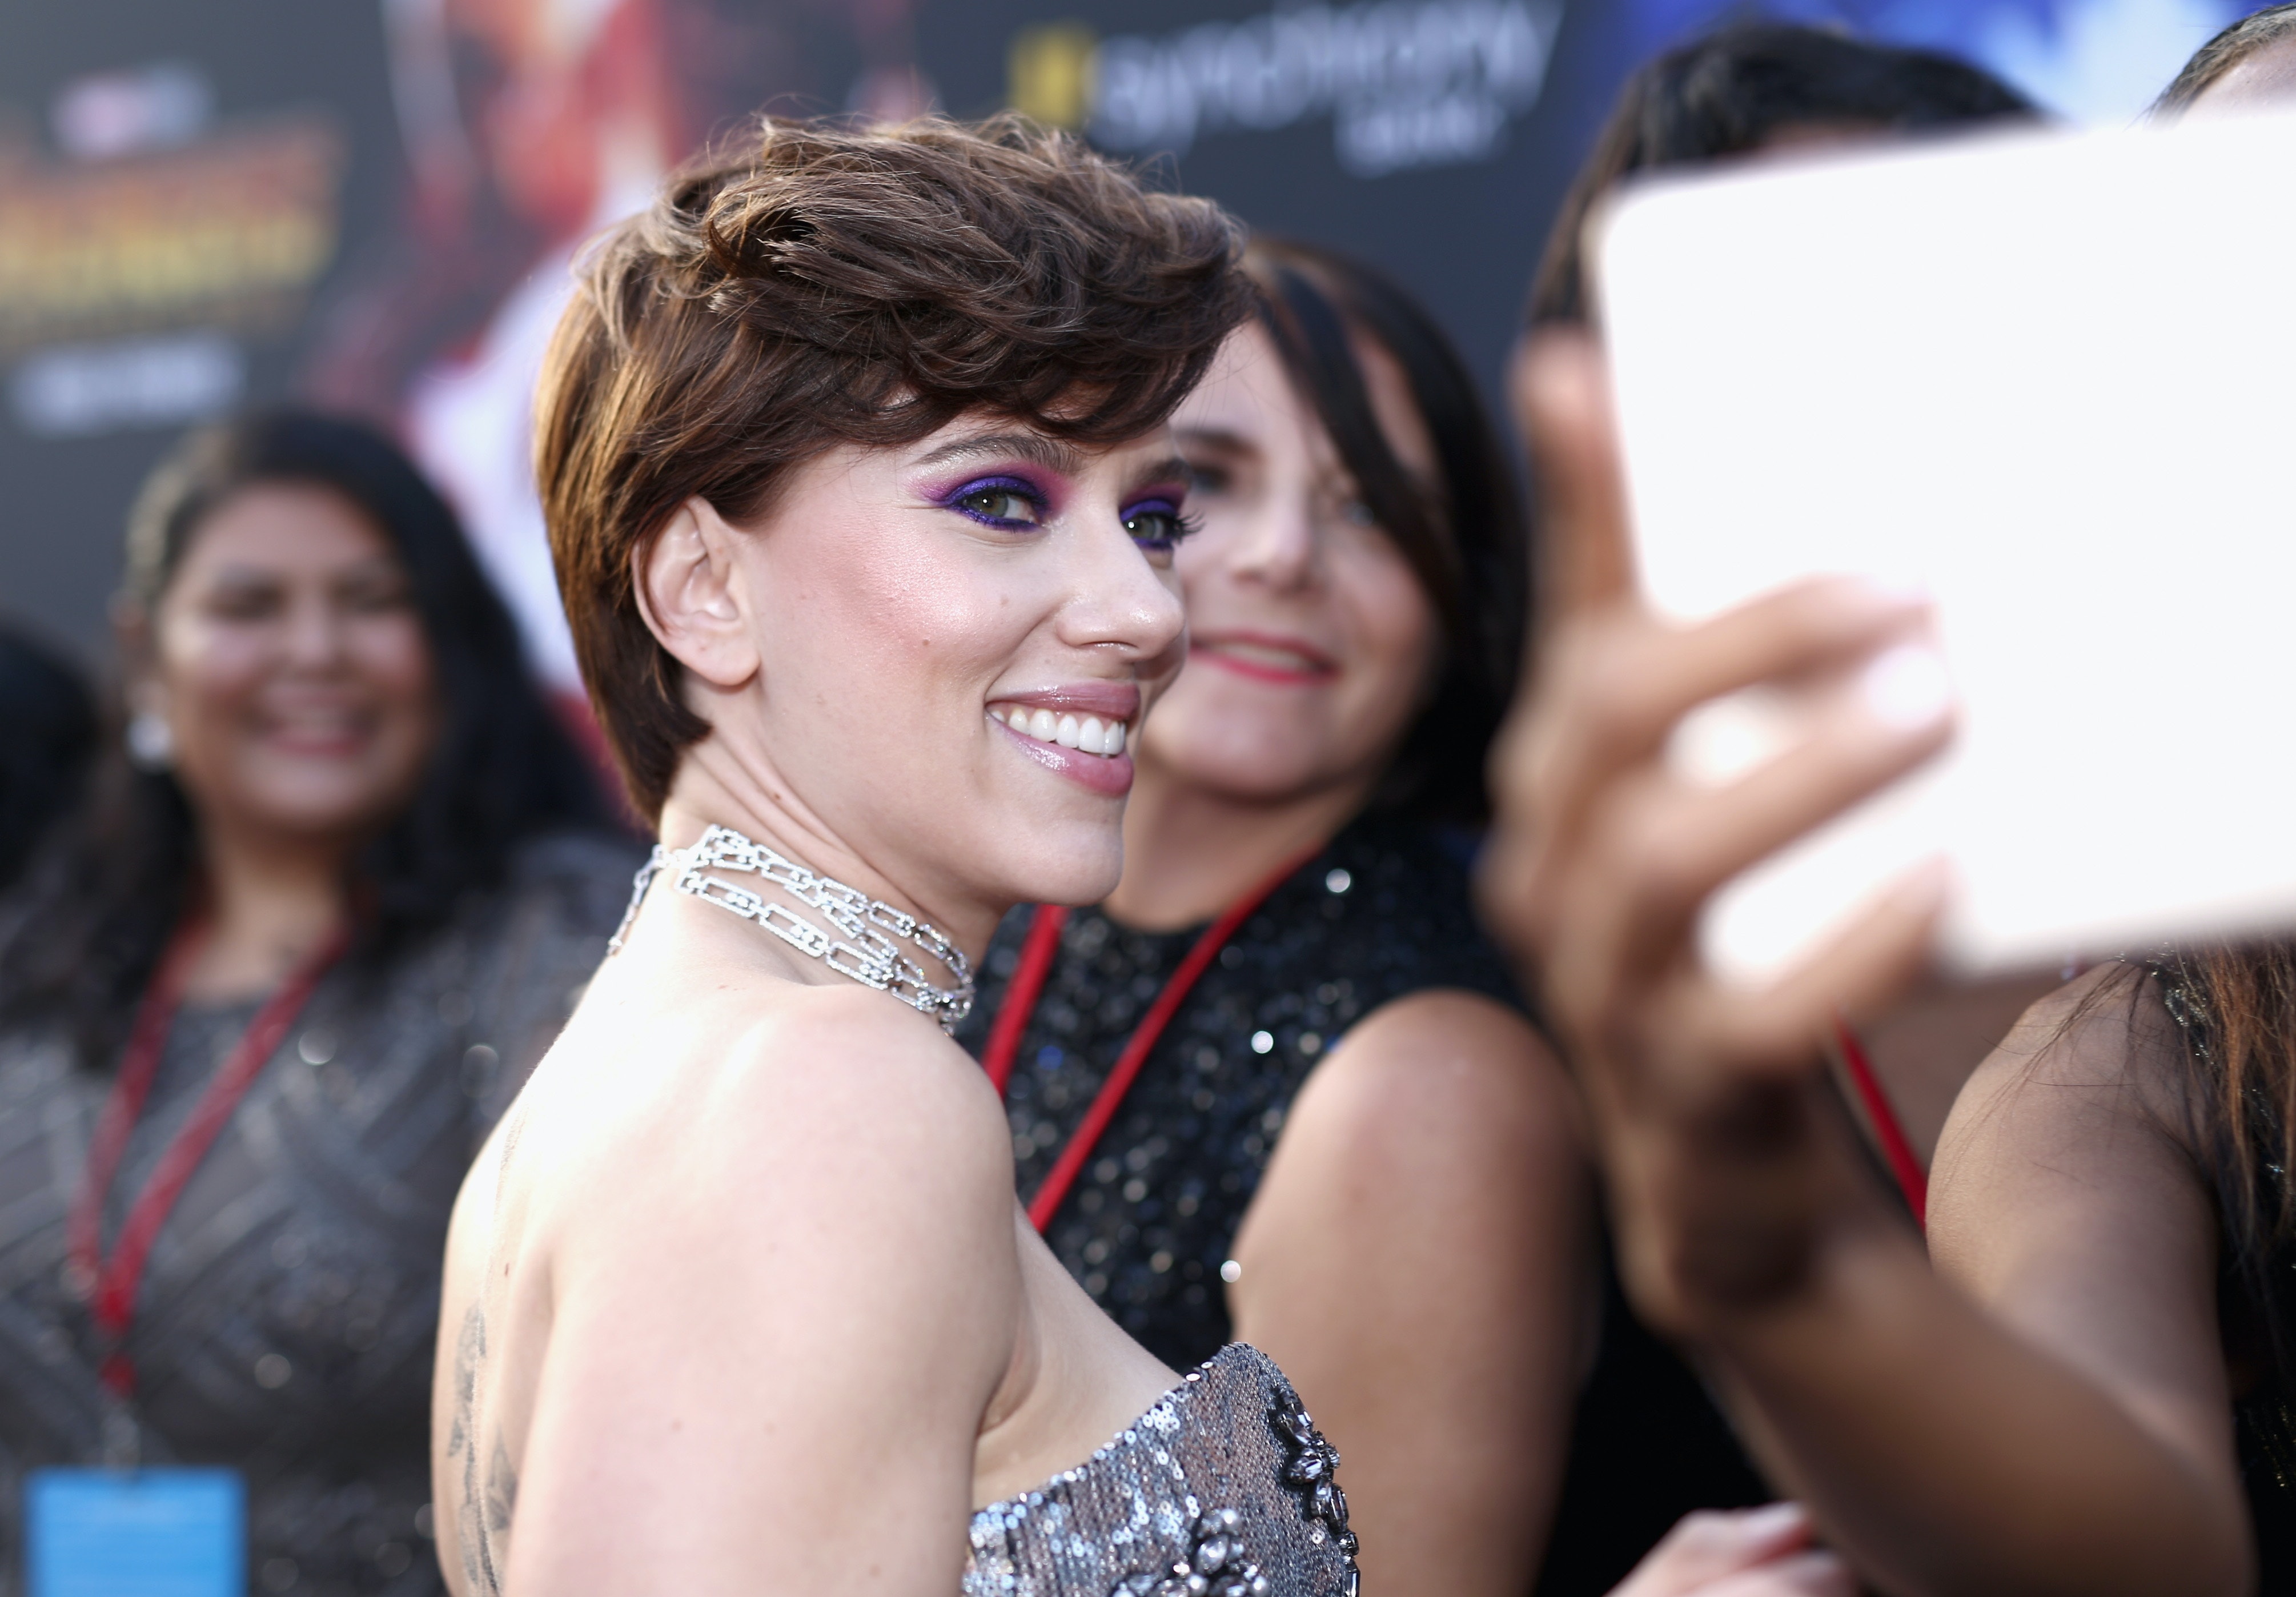 Is Scarlett Johansson S Brunette Pixie Cut Real The Look Is So Different But So Good